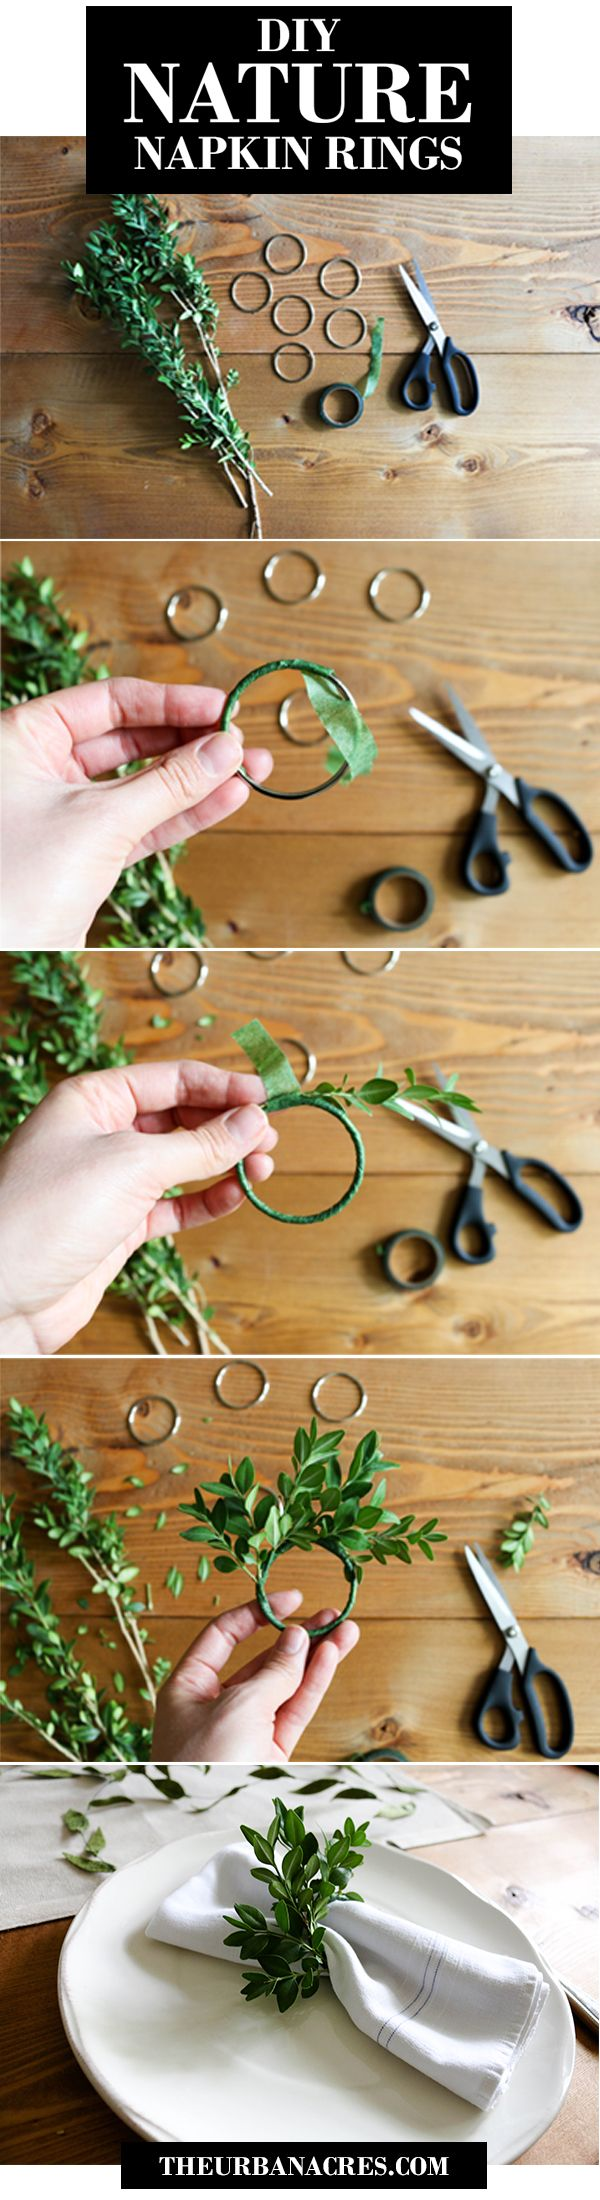 DIY Nature Napkin Rings for your table! #crafts_table_organizer